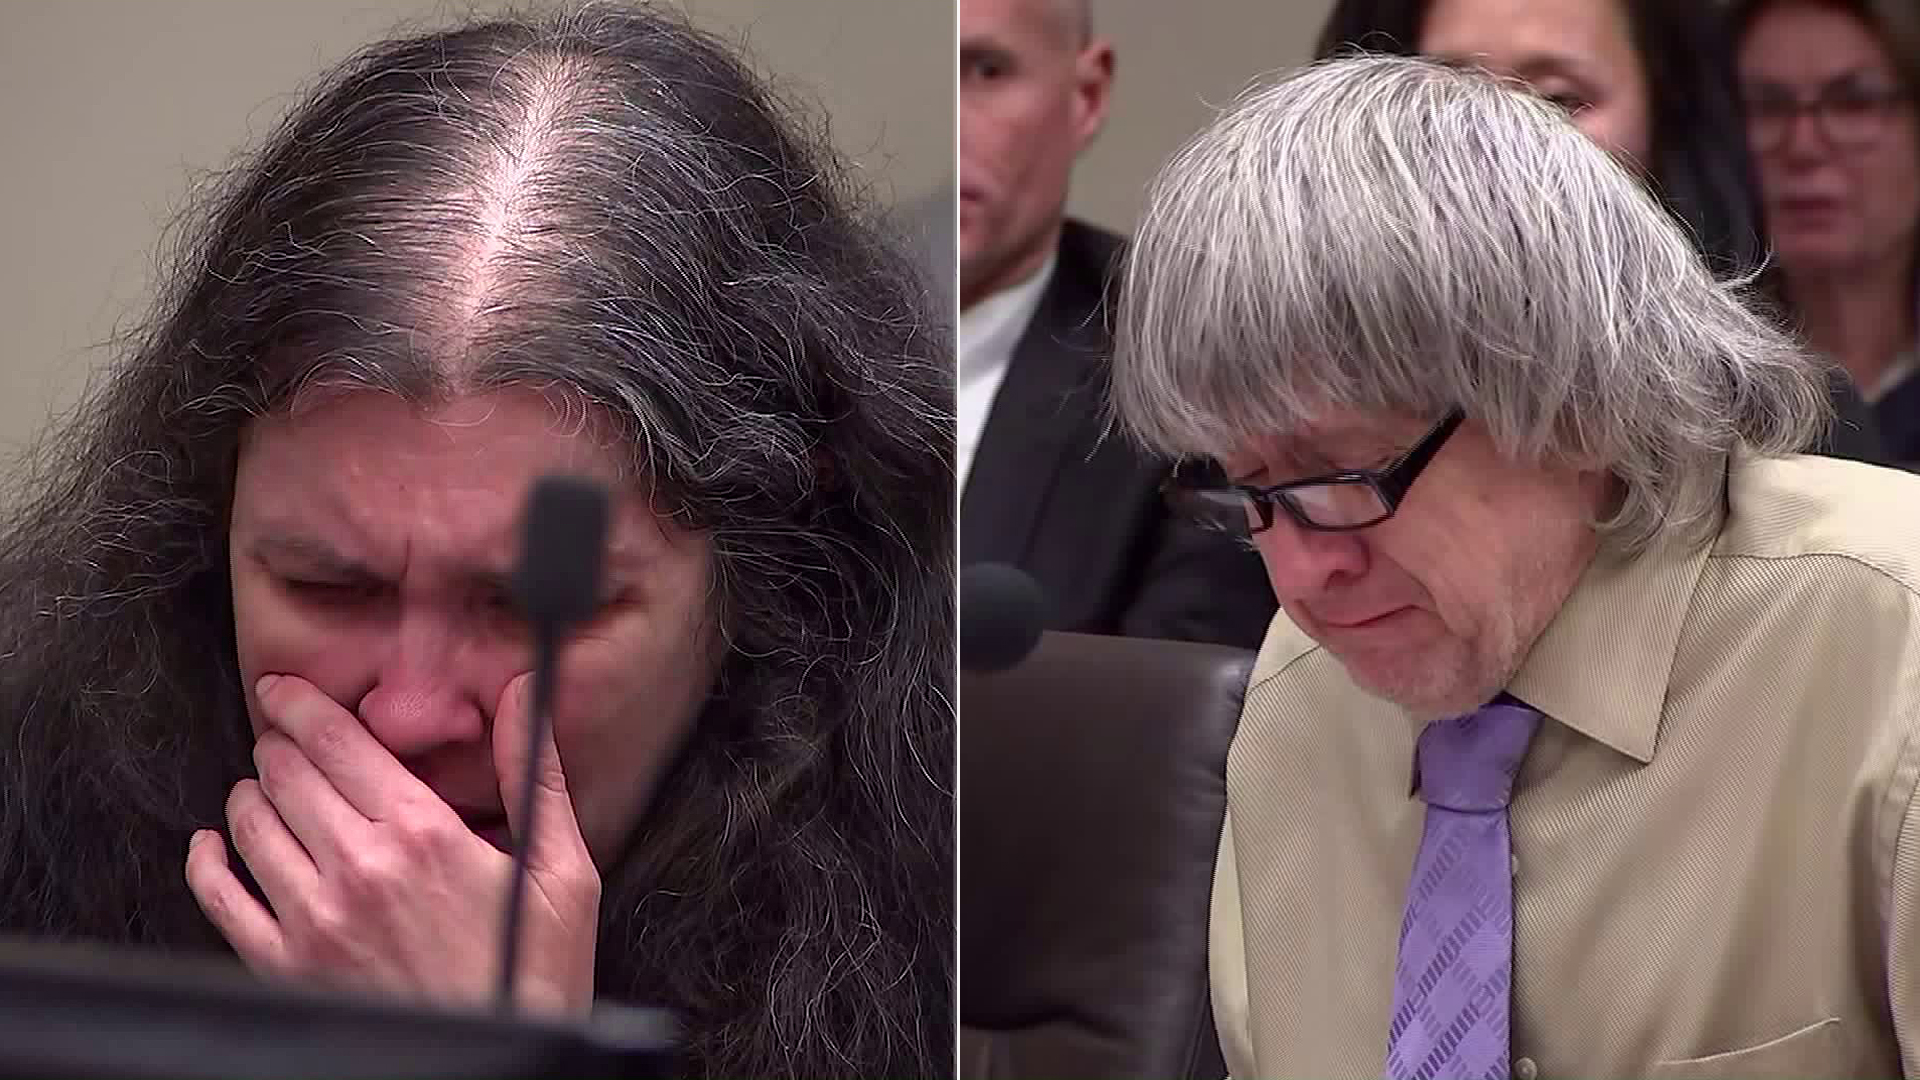 Louise Turpin and David Turpin are seen crying in court during their sentencing hearing on April 19, 2019. (Credit: Pool)